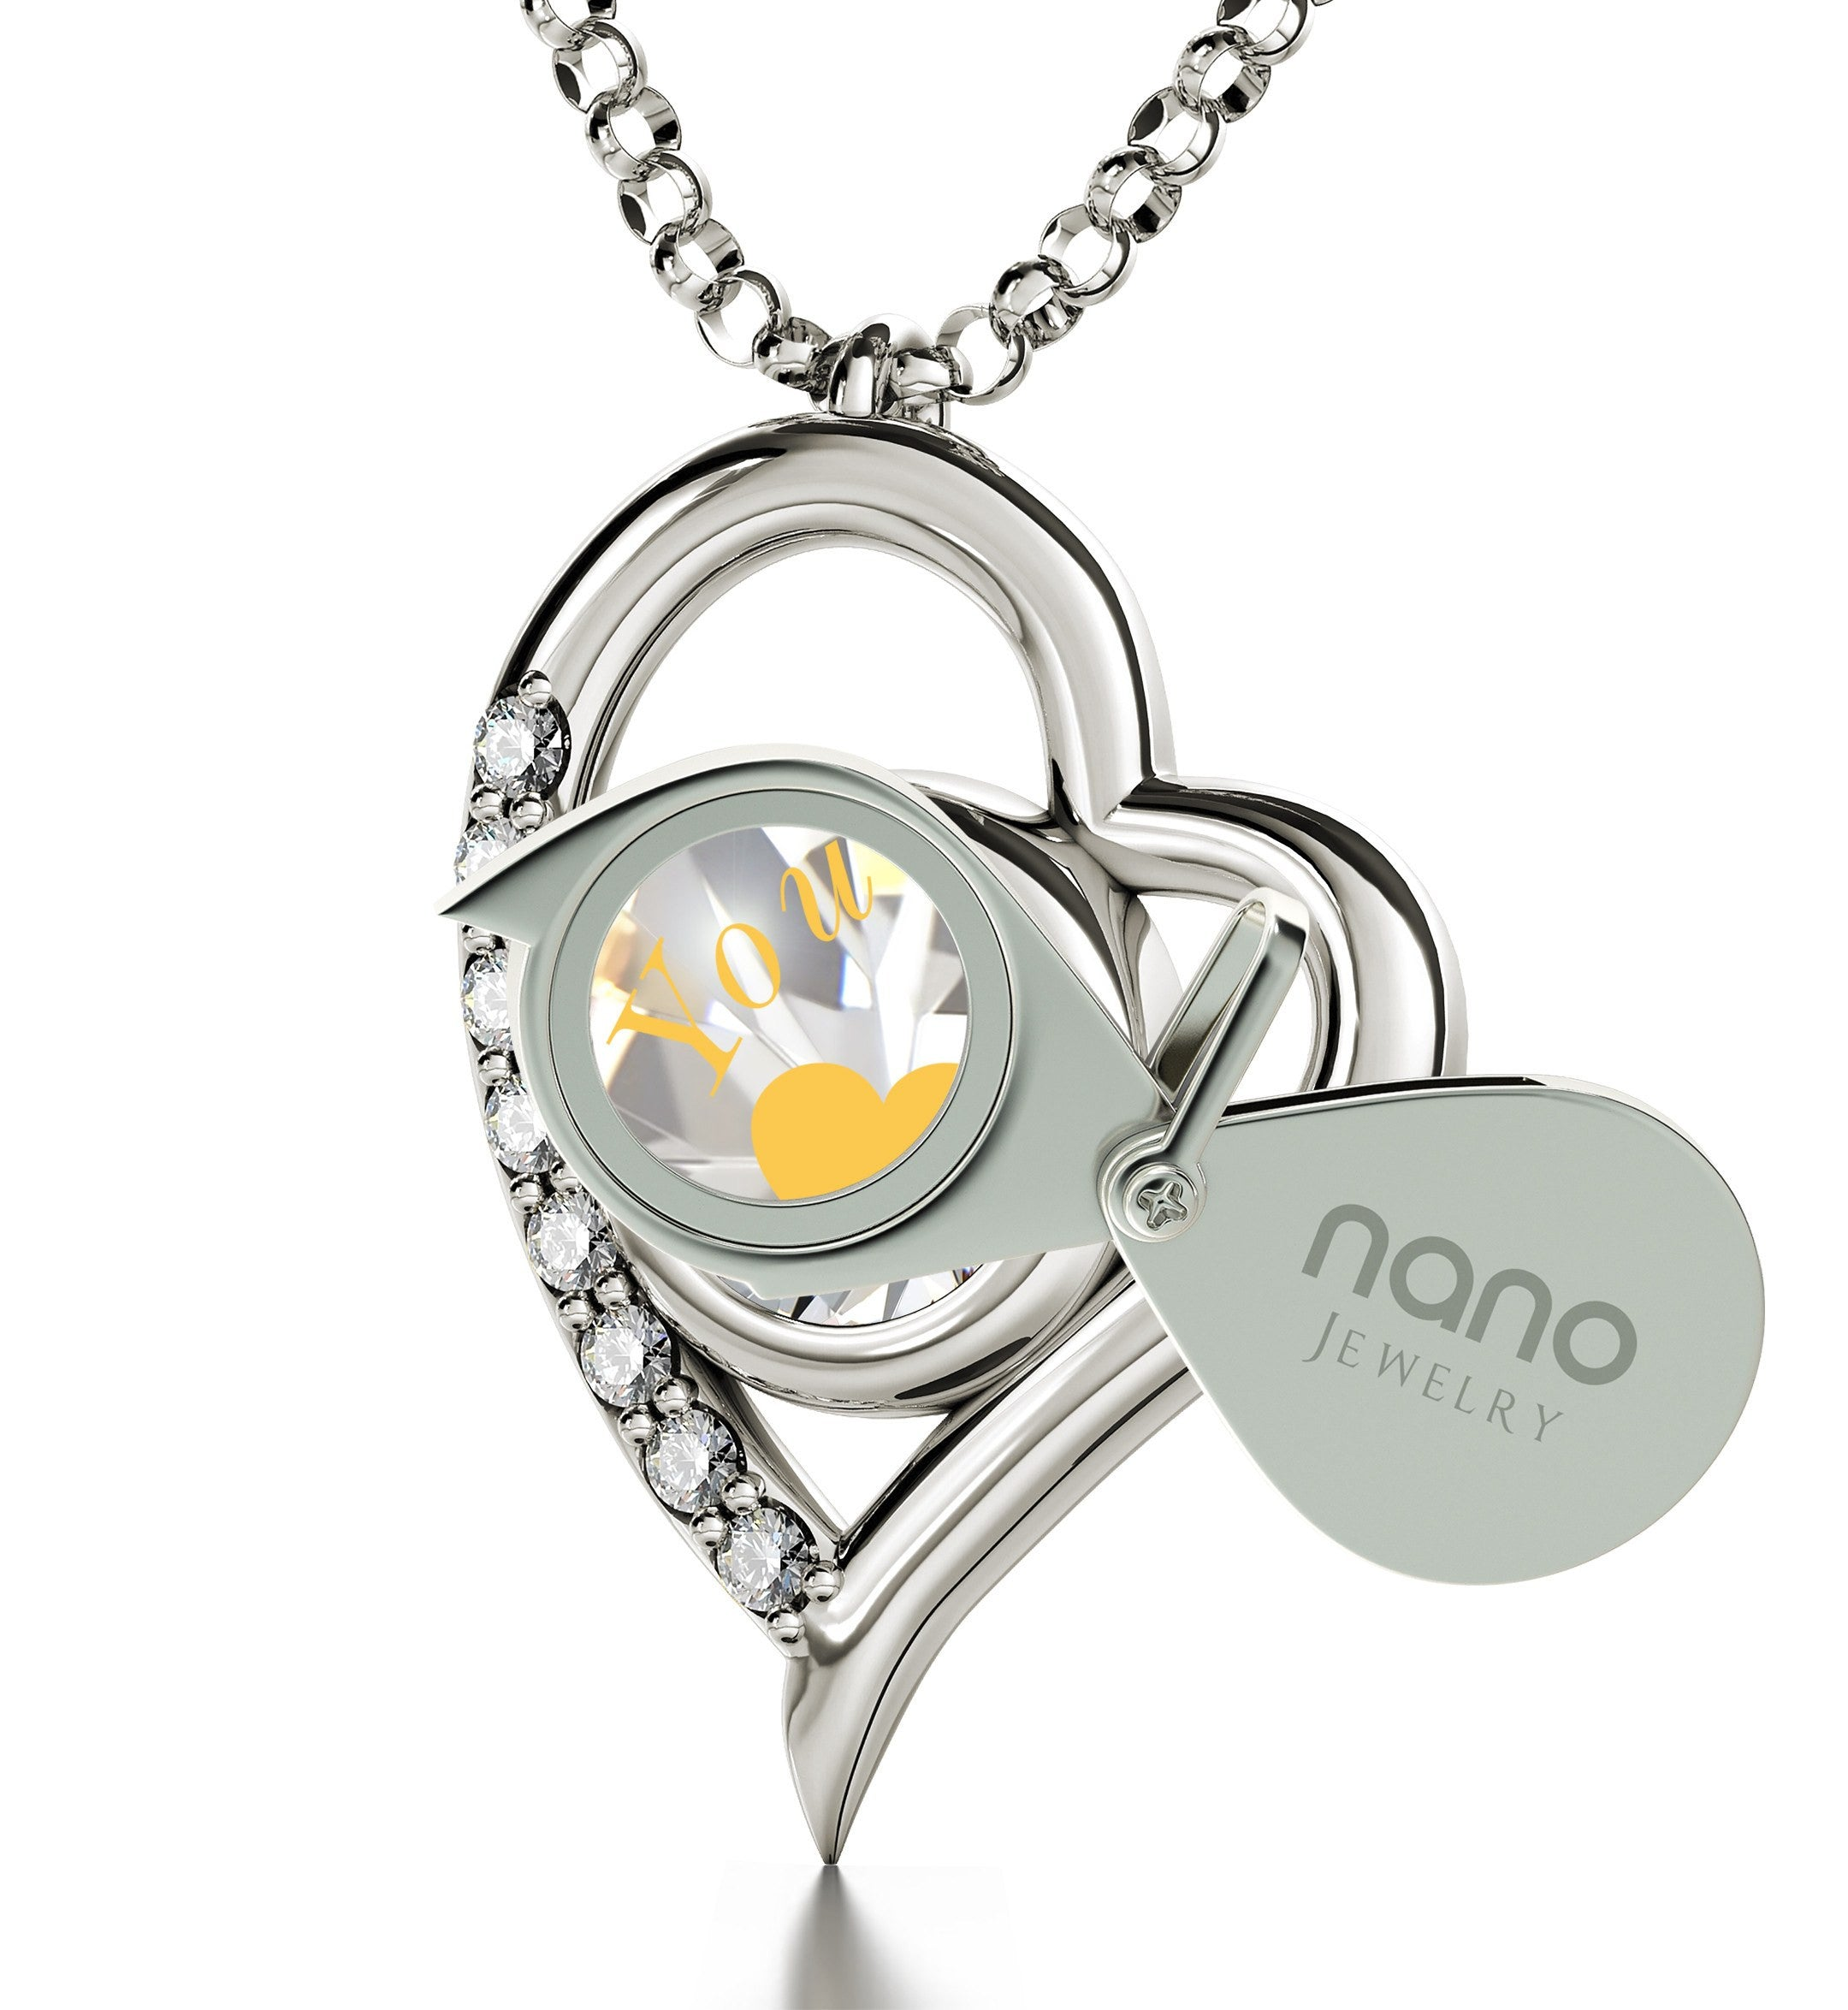 """""Will You Marry Me"" Engraved in 24k on Crystal Swarovski, Romantic Ways to Propose, Silver Heart Necklace"""